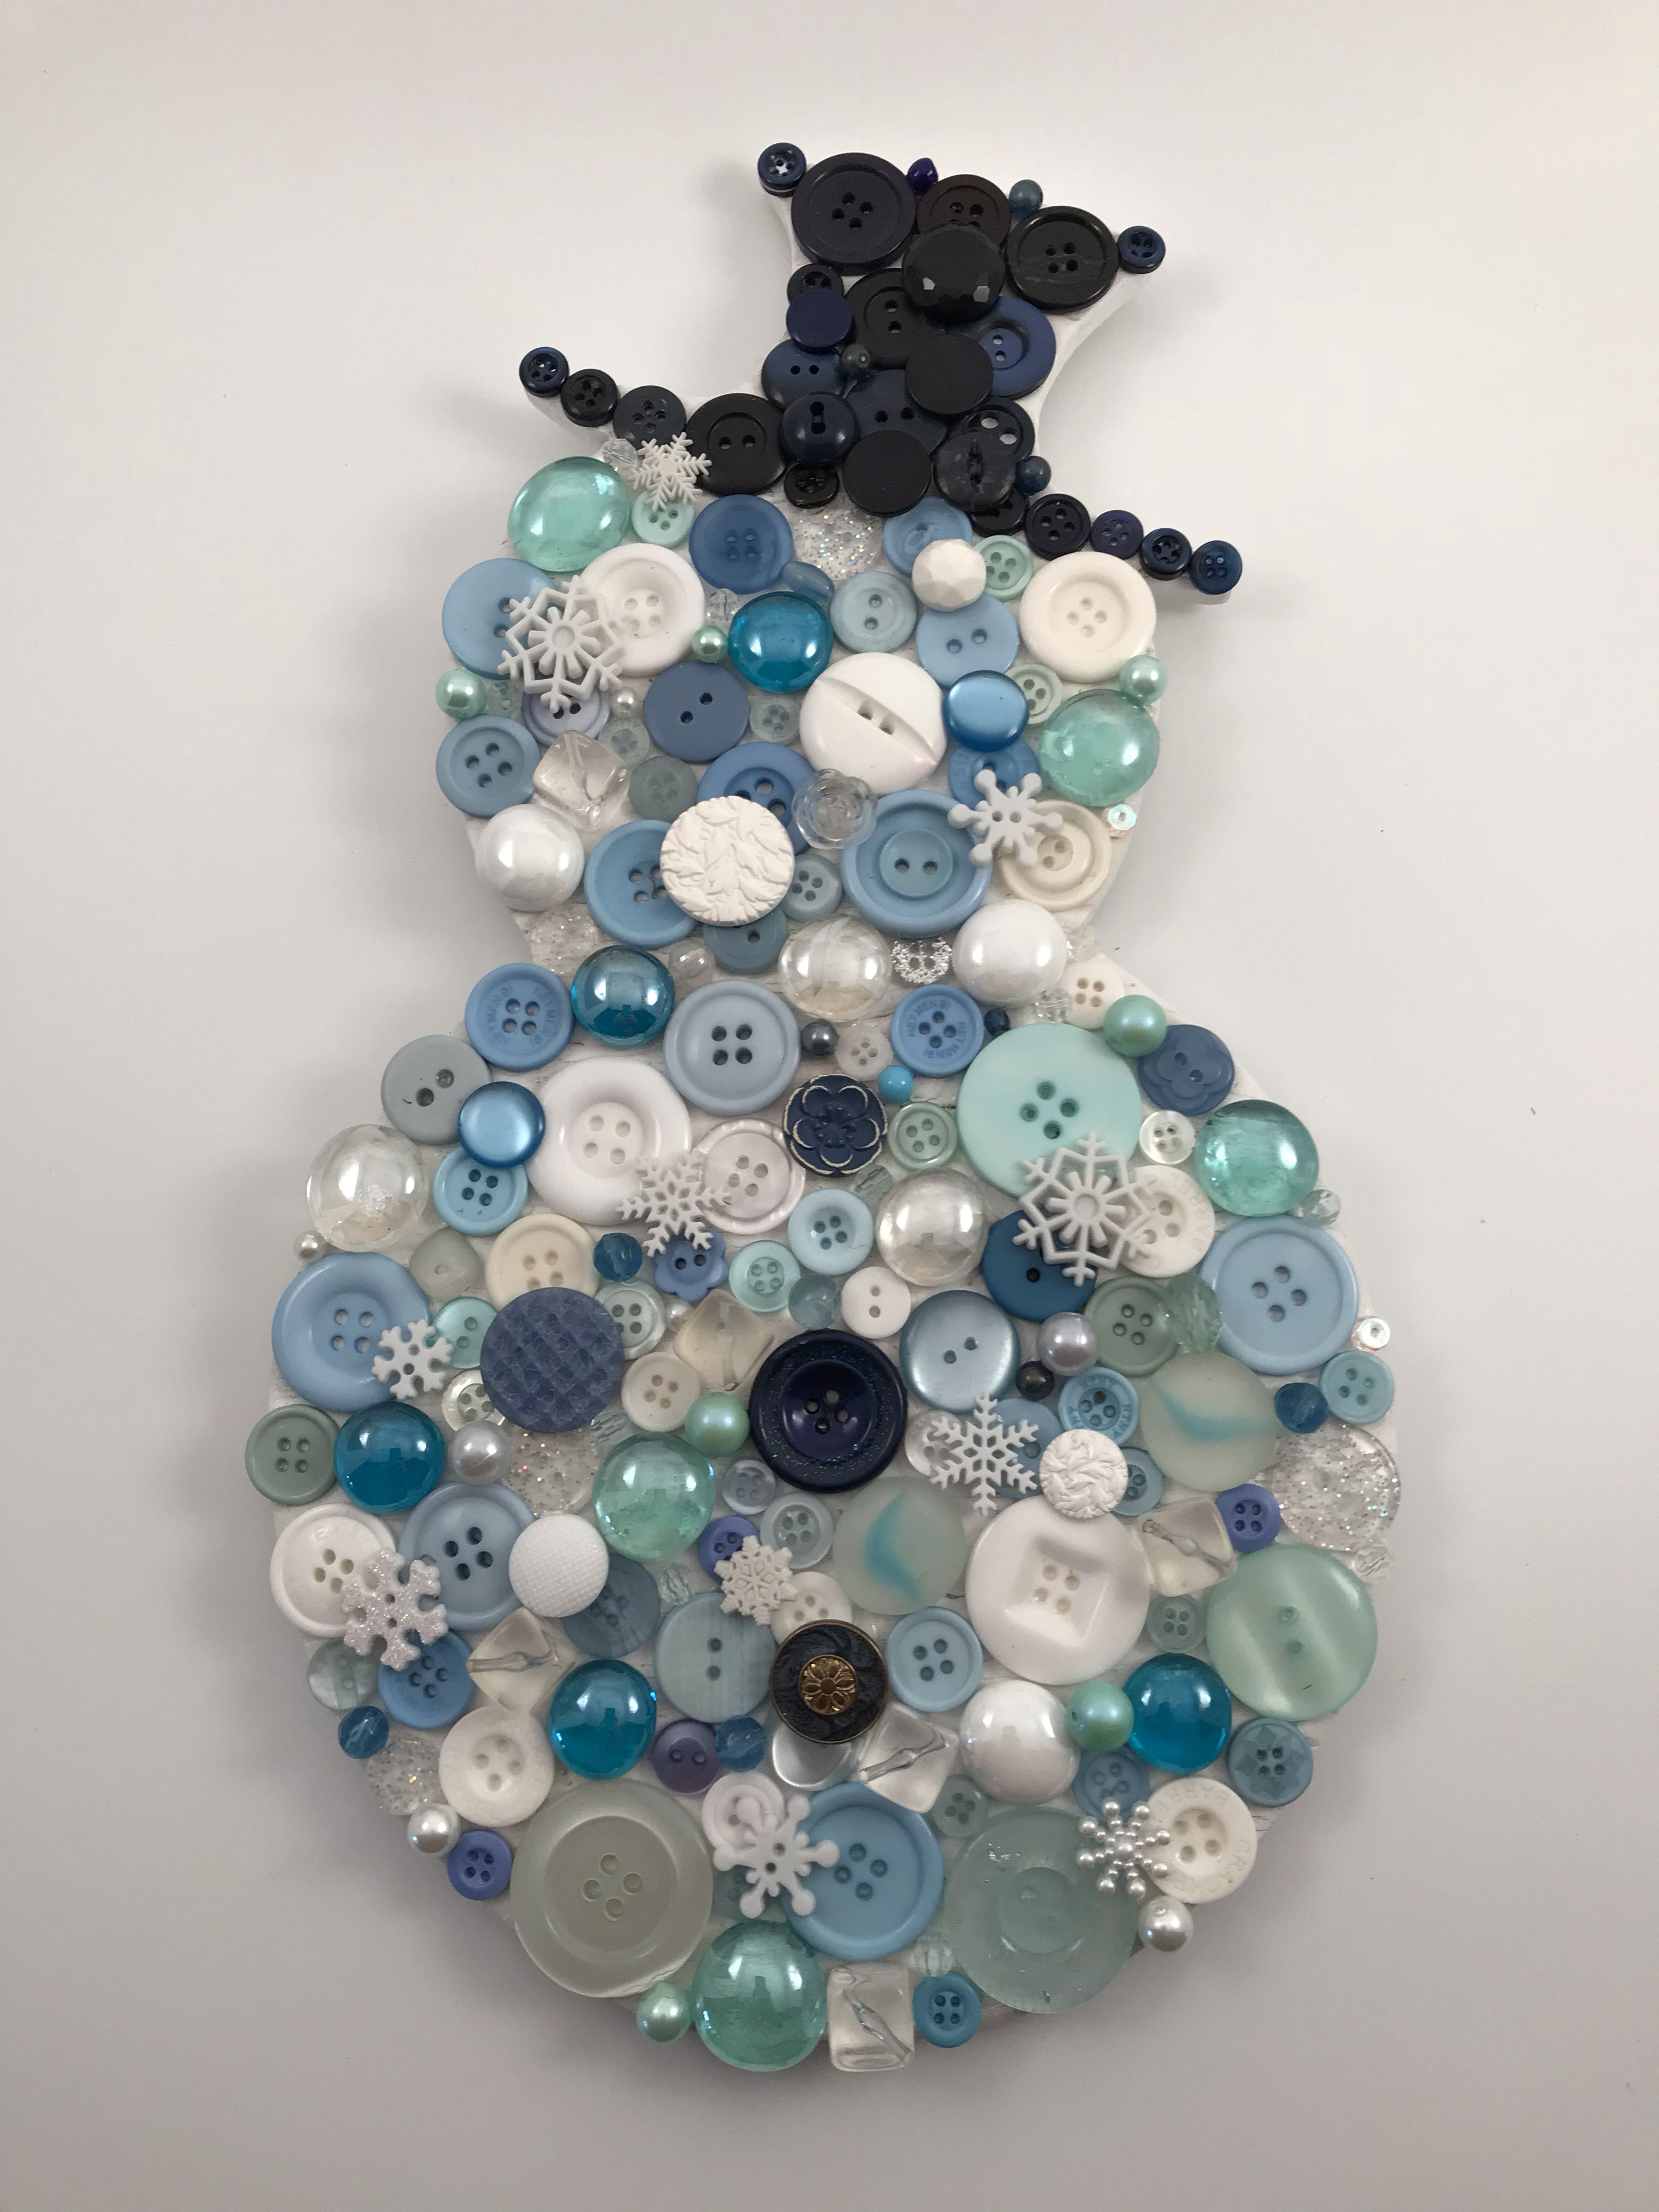 Pin by Essential Oils with Monica on Mosaics Pinterest